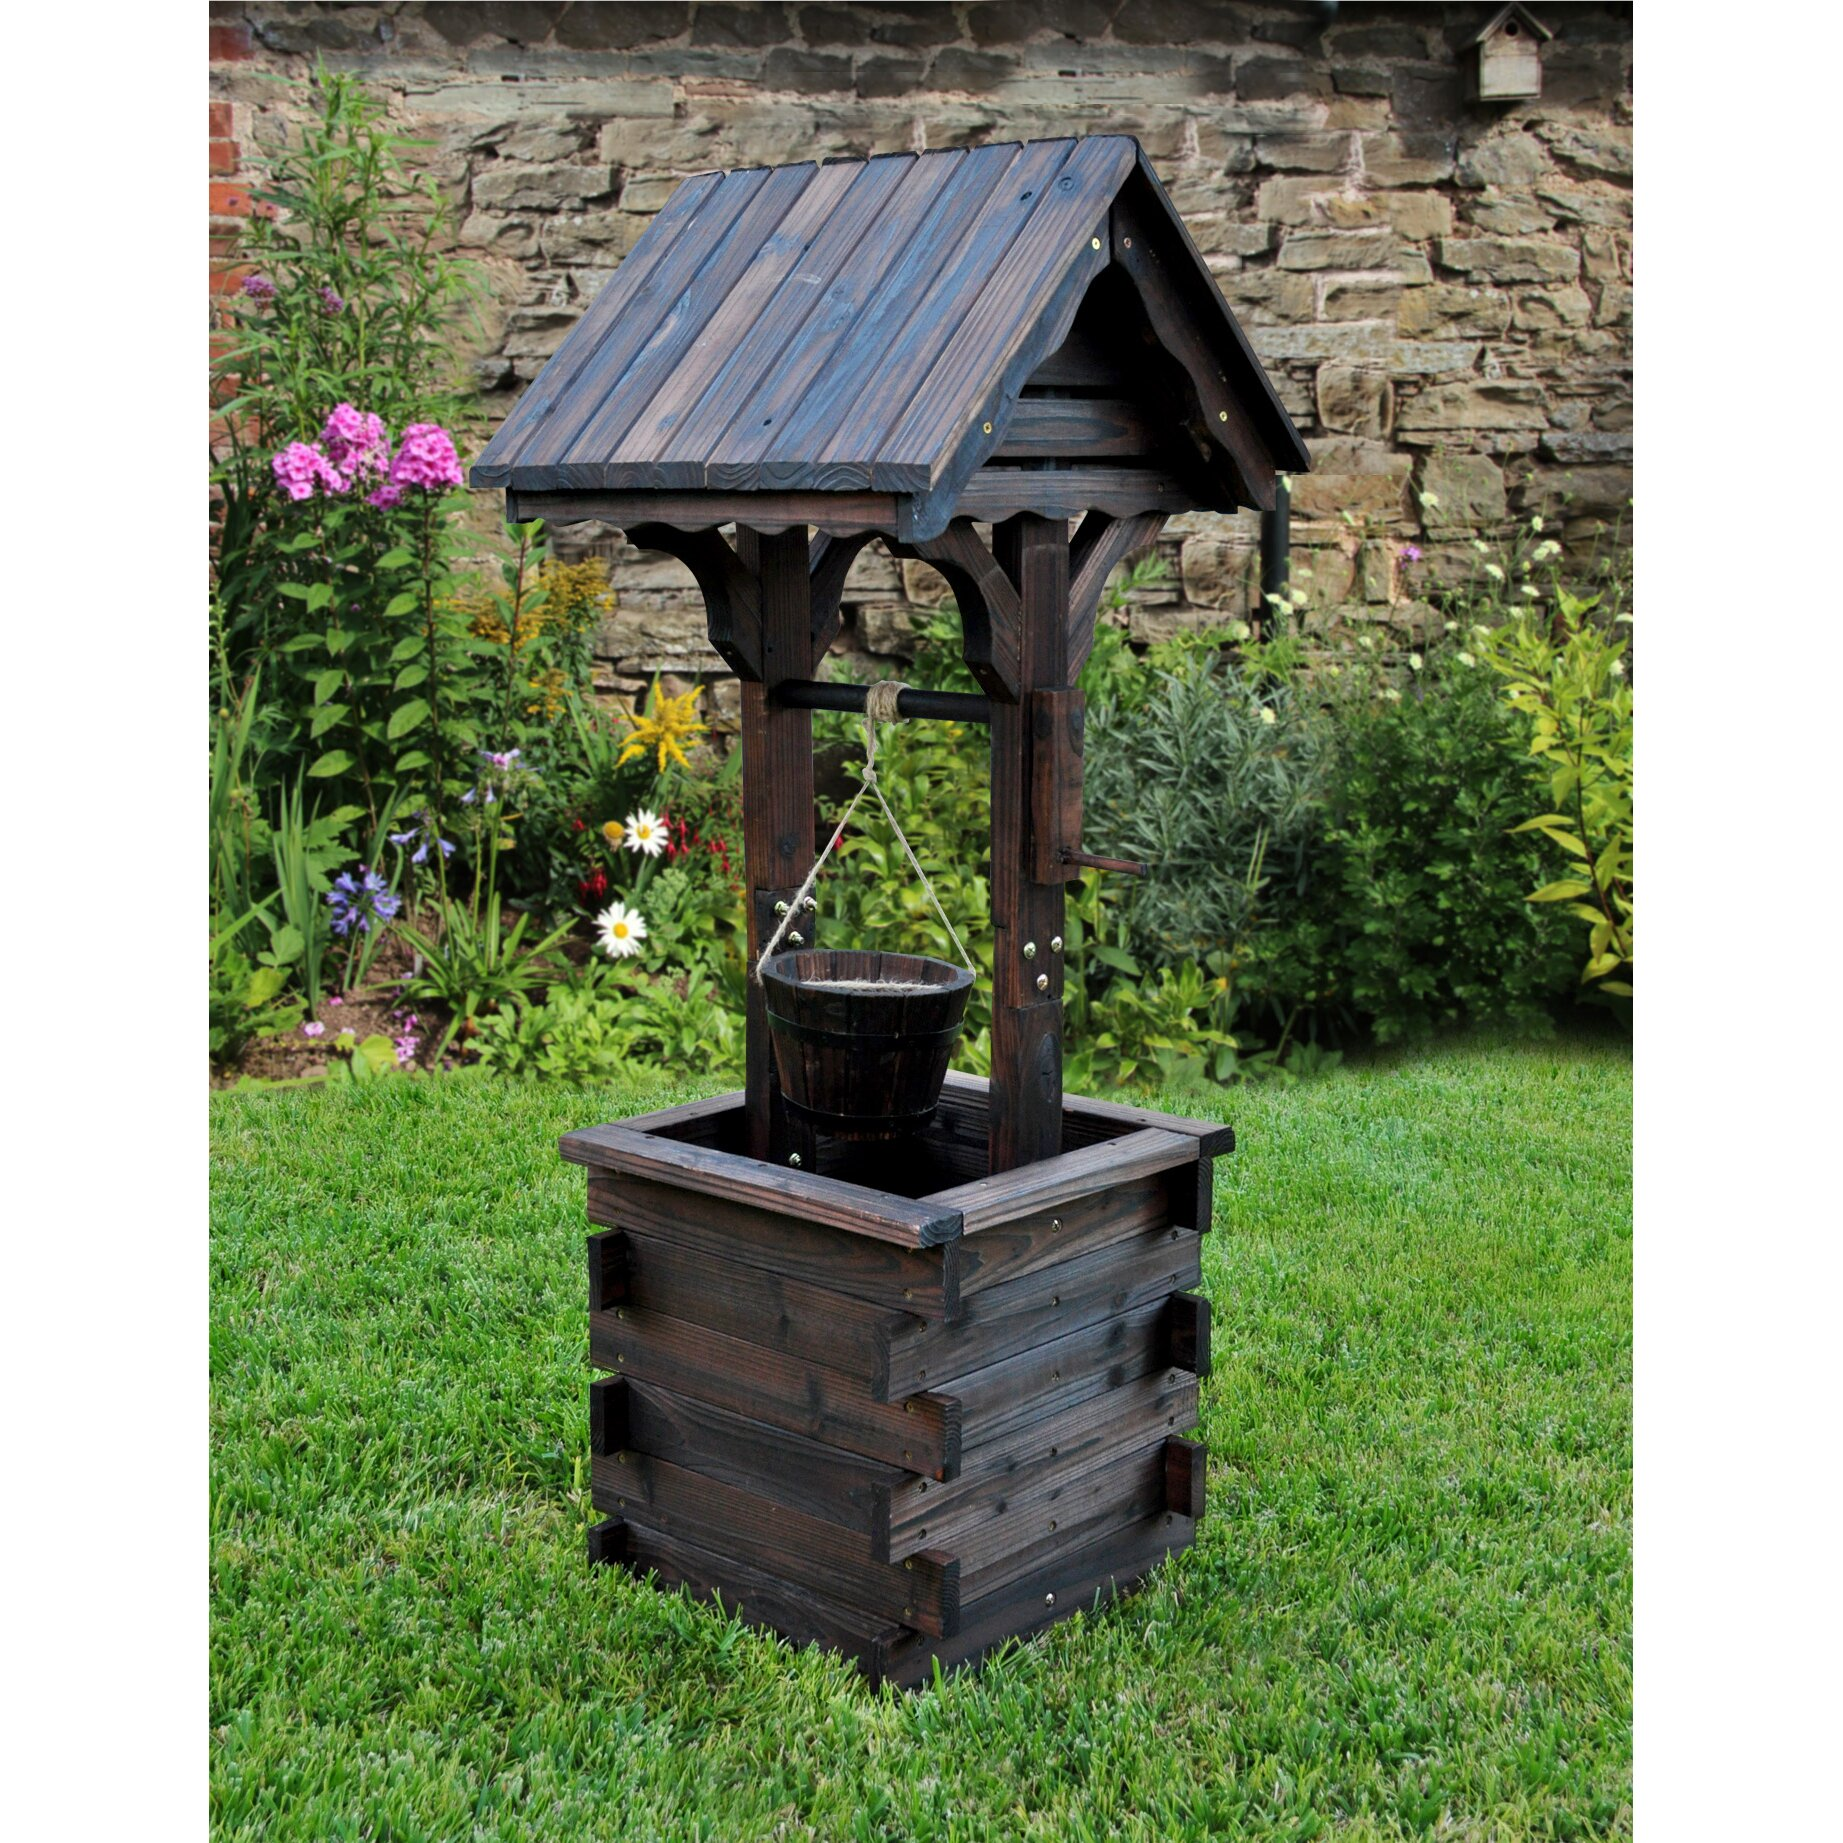 Wishing well lawn ornament - Lawn Accent Wishing Well